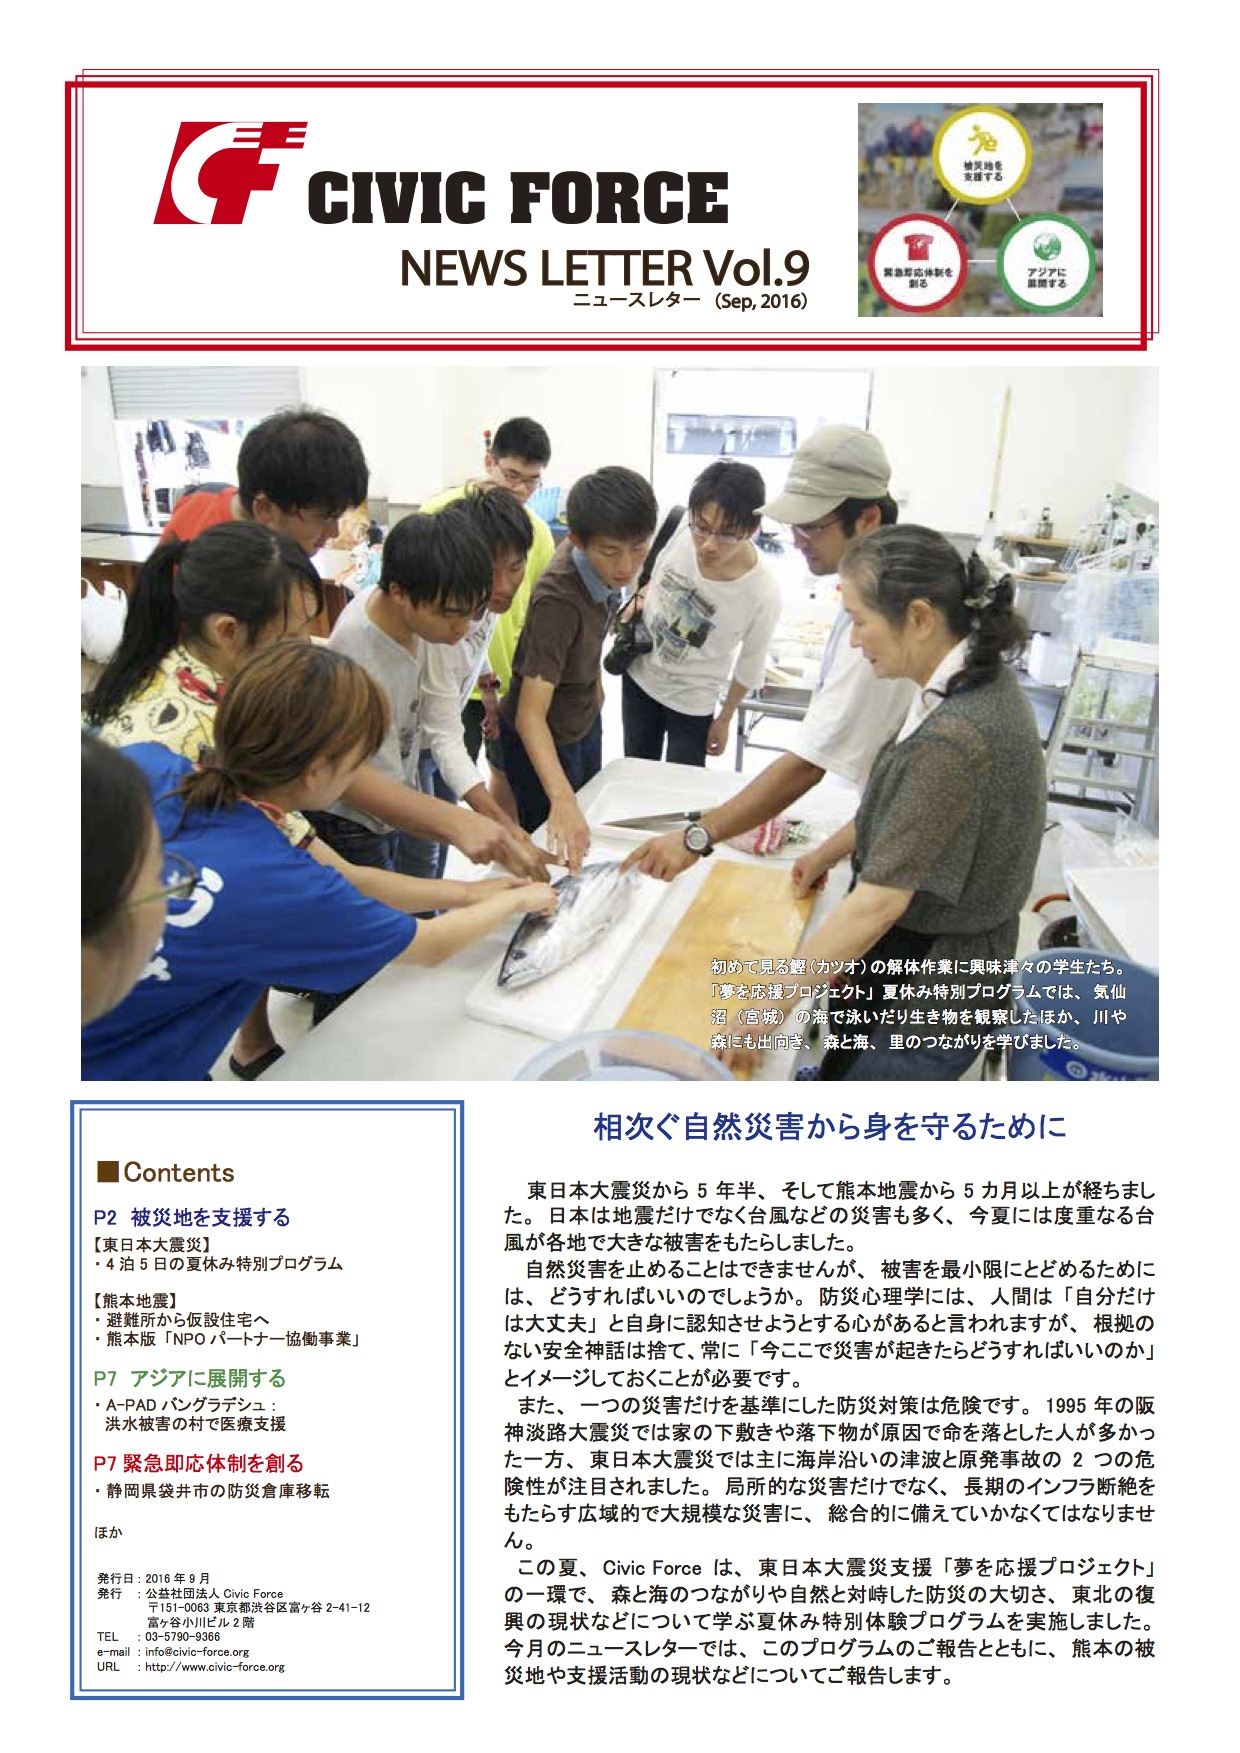 NewsLetter Vol.9.jpg